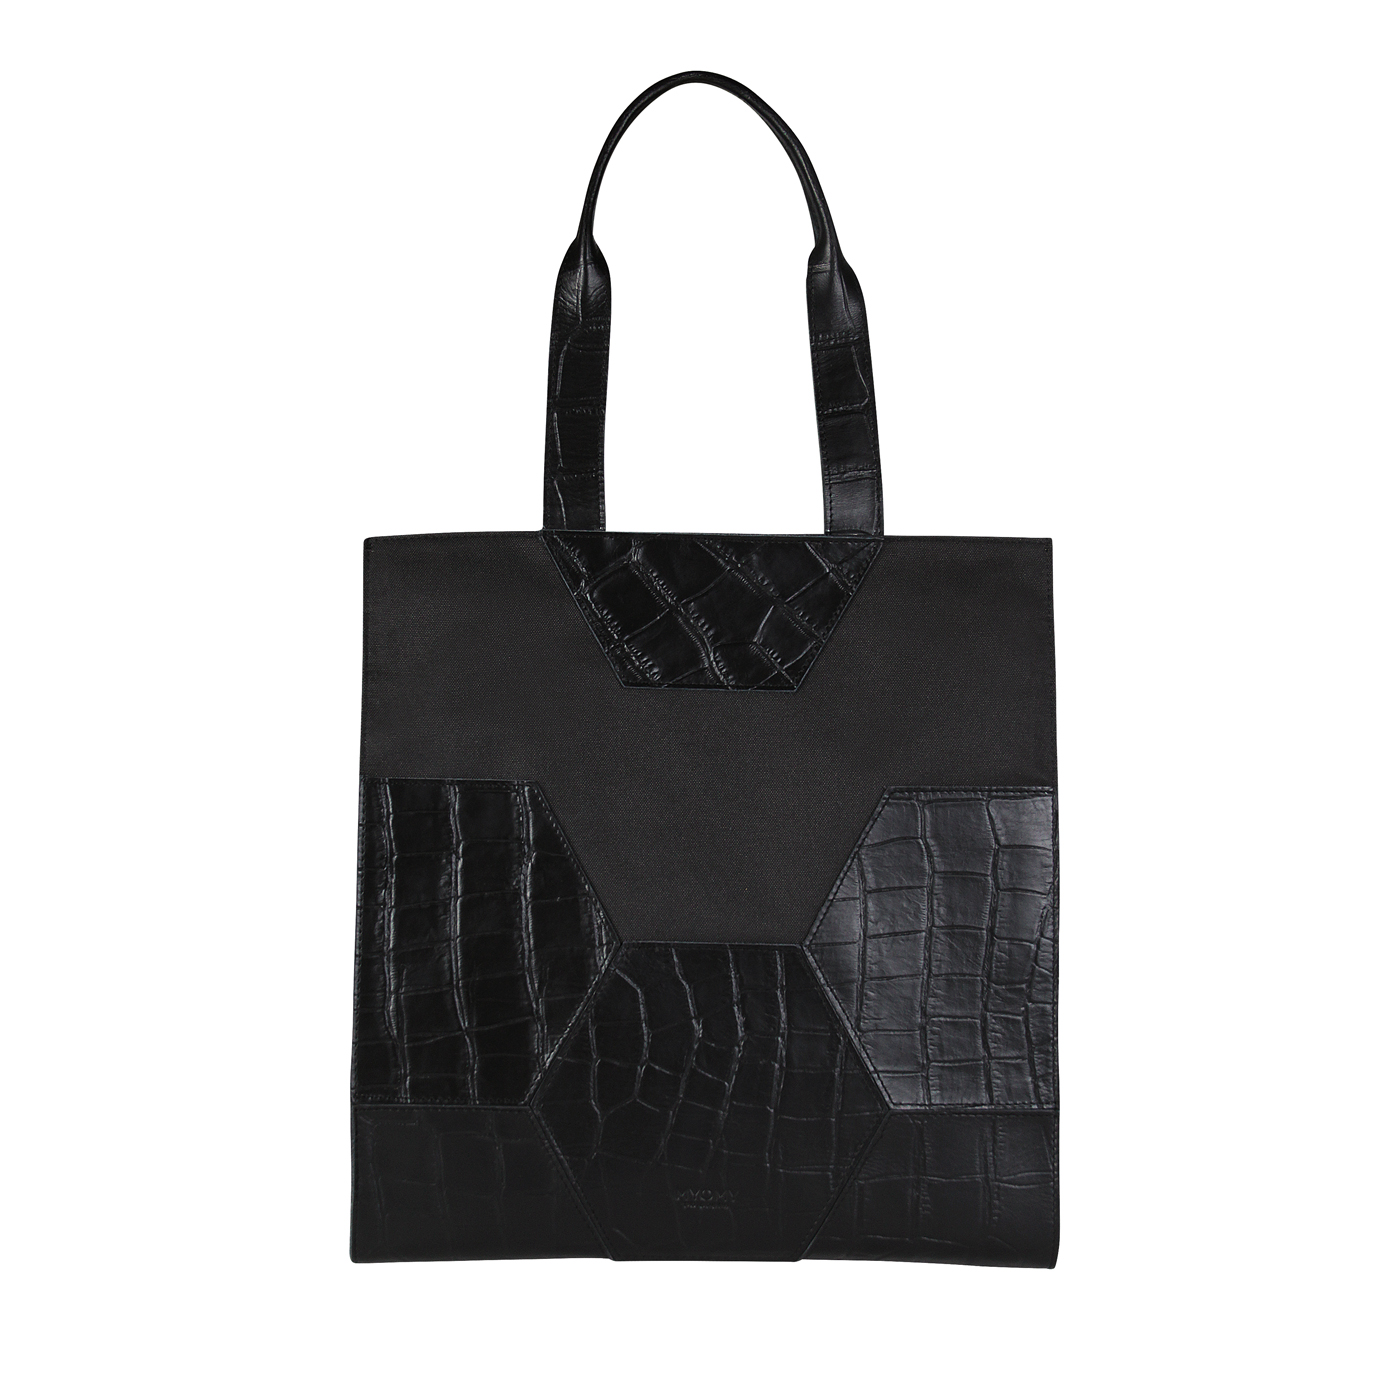 MY TREASURE BAG Long Handle – croco black & recycled plastic